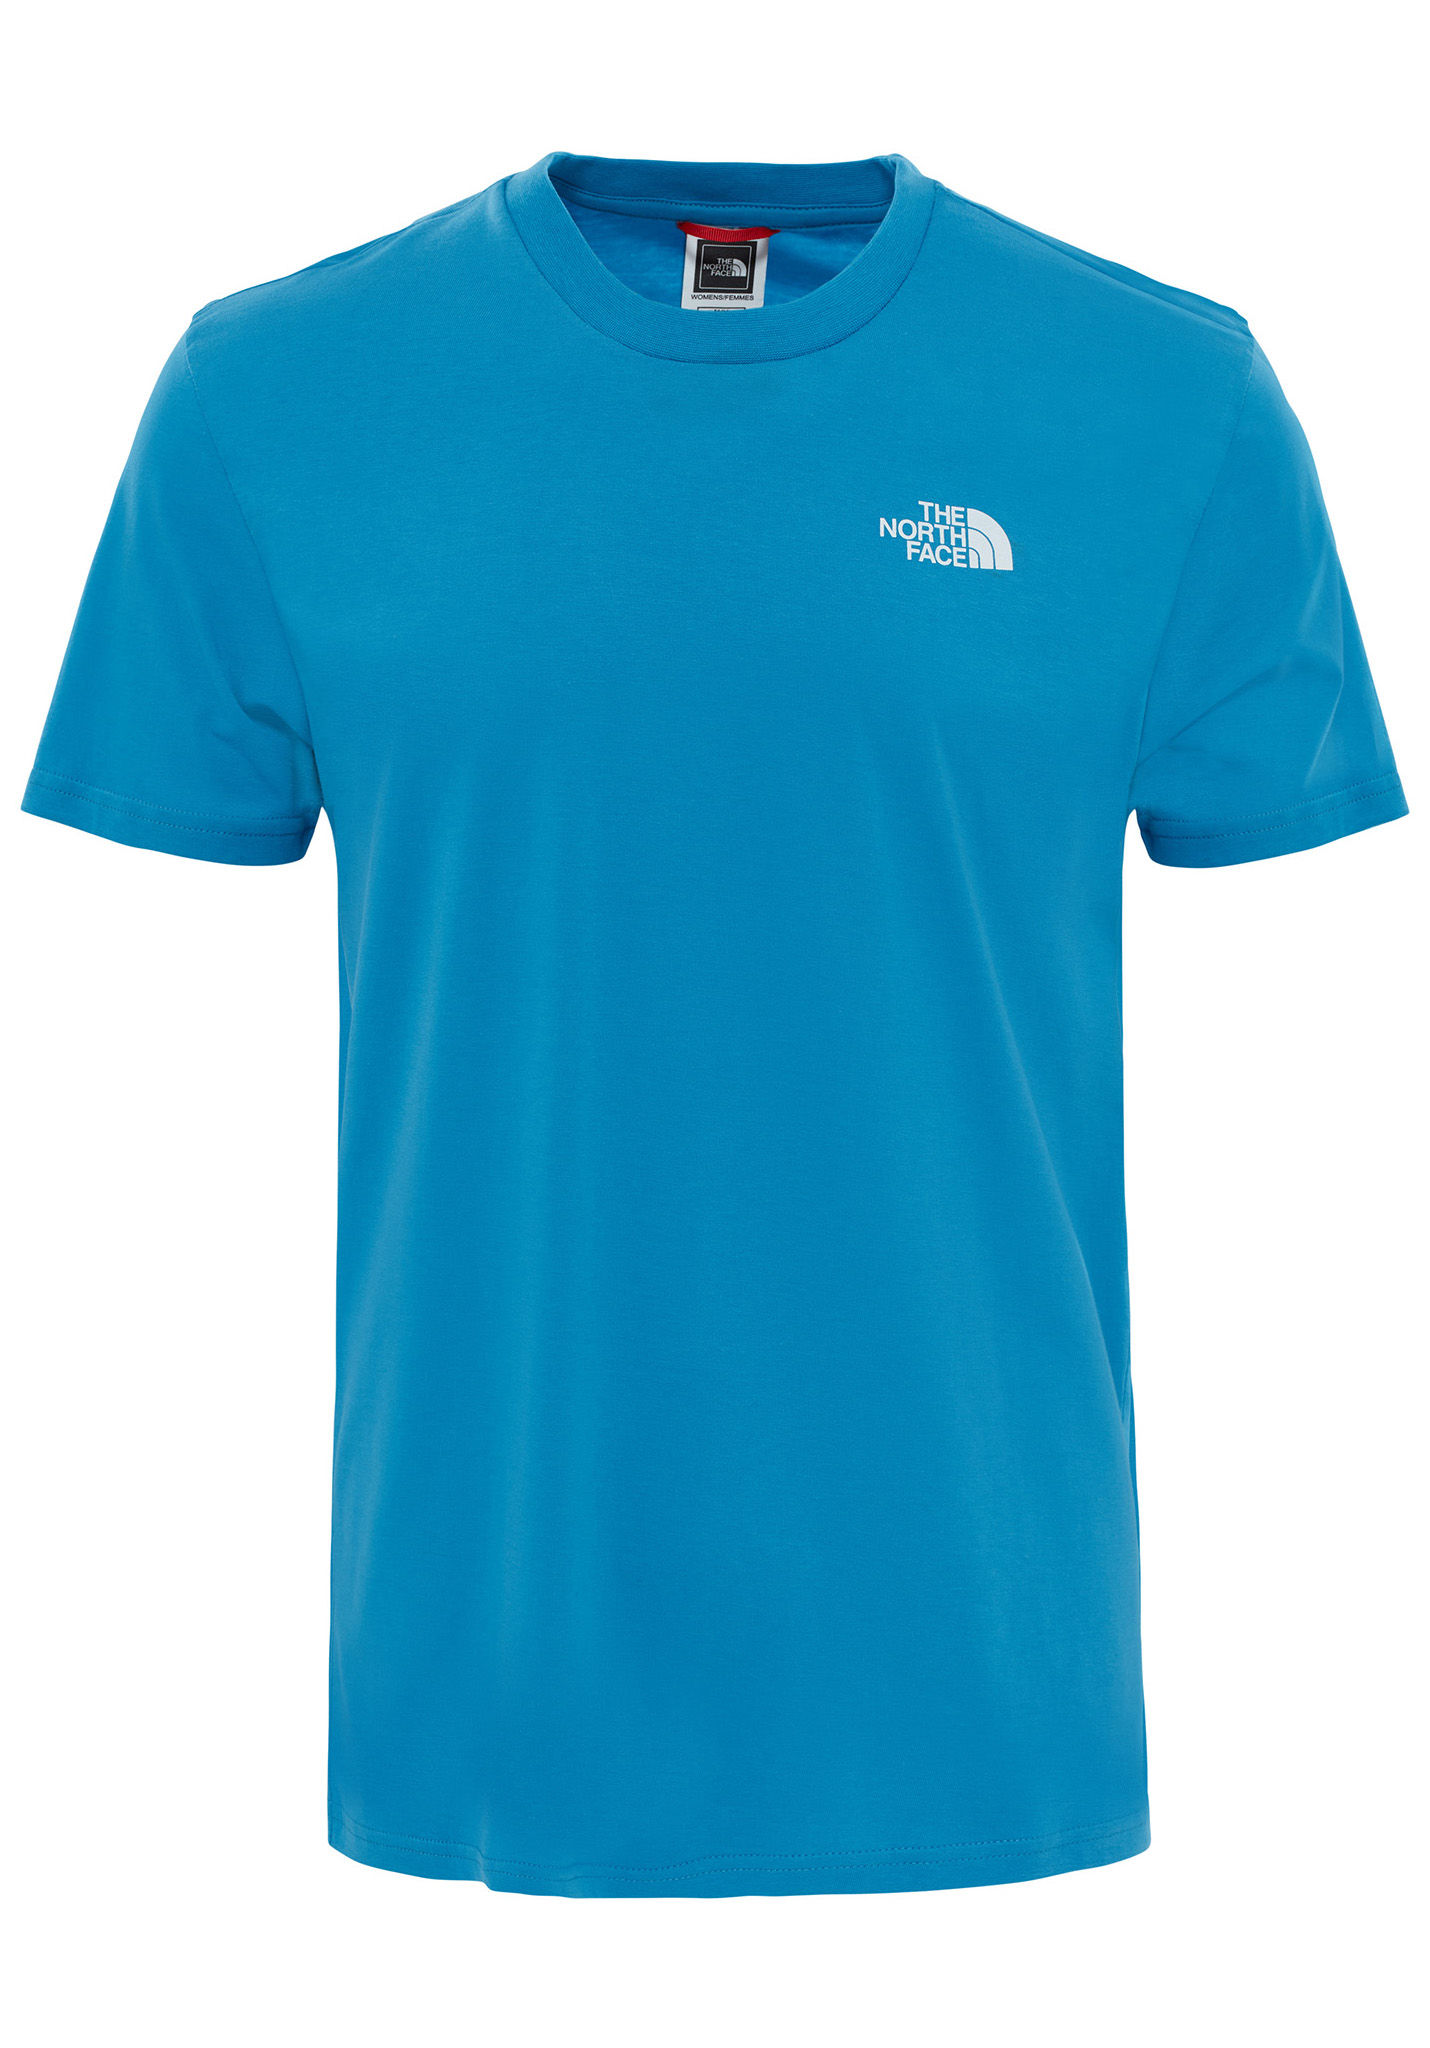 760777212e1c THE NORTH FACE Simple Dome - T-Shirt for Men - Blue - Planet Sports